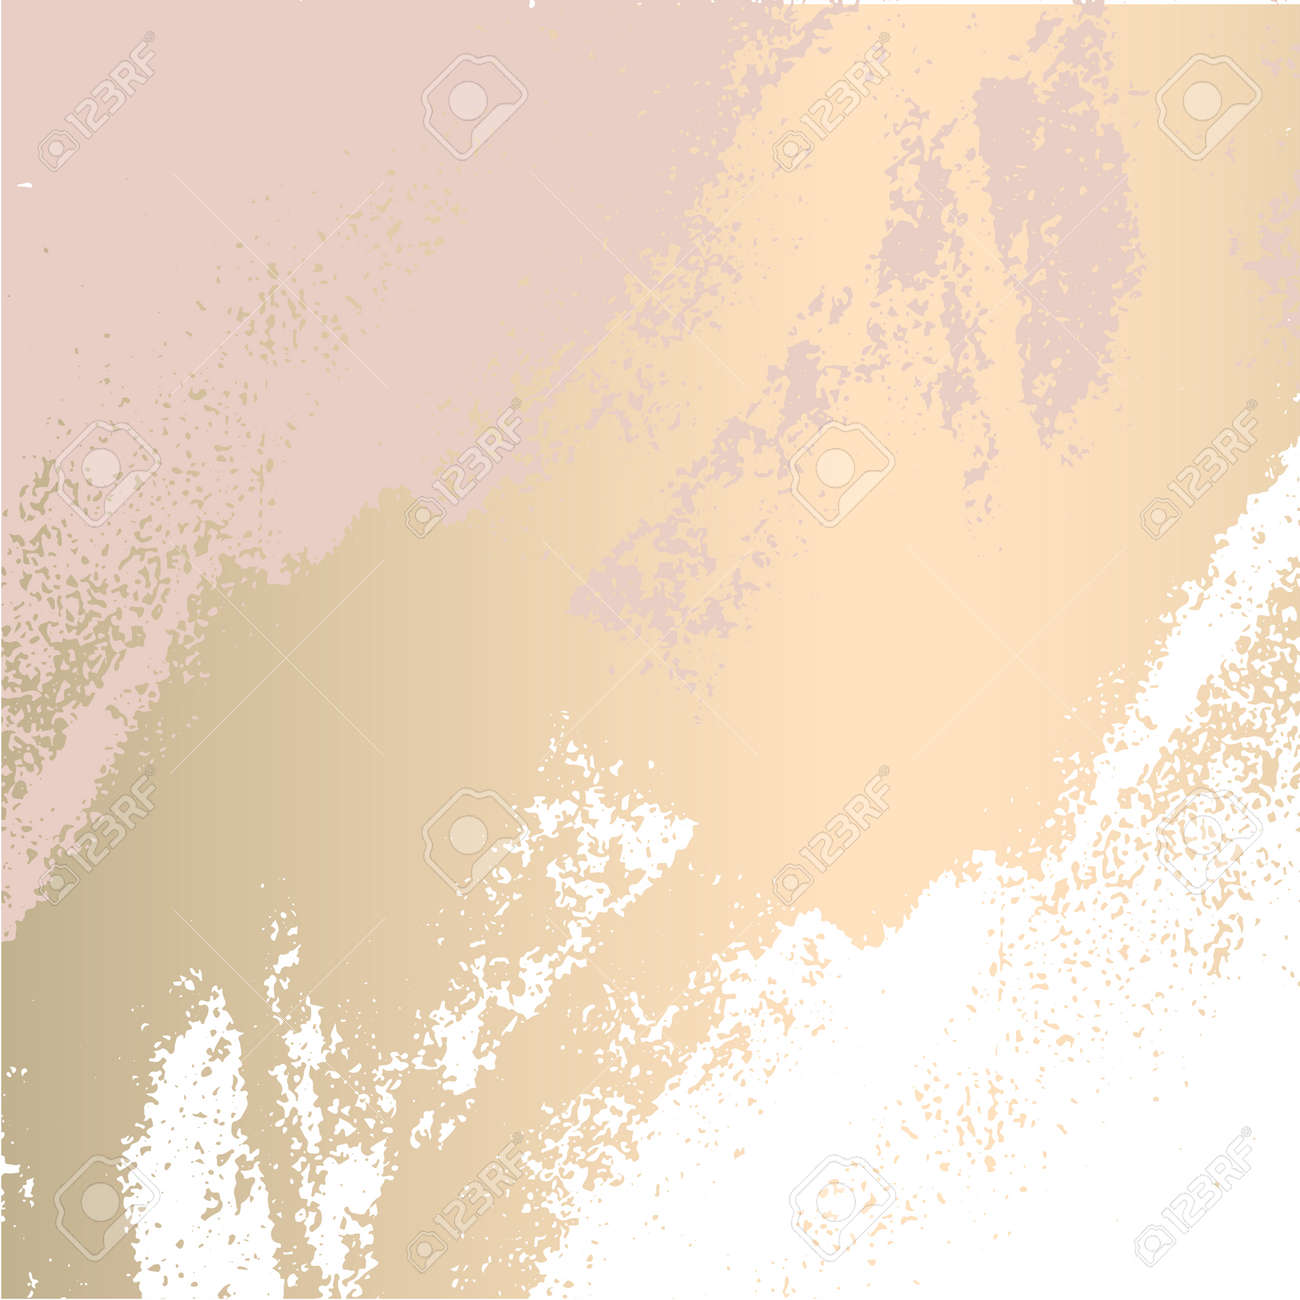 trendy blush pink gold feminine pastel texture background for stunning design of headers, covers, banners, posters, greeting cards, wedding, fashion, invitations, etc - 128322552